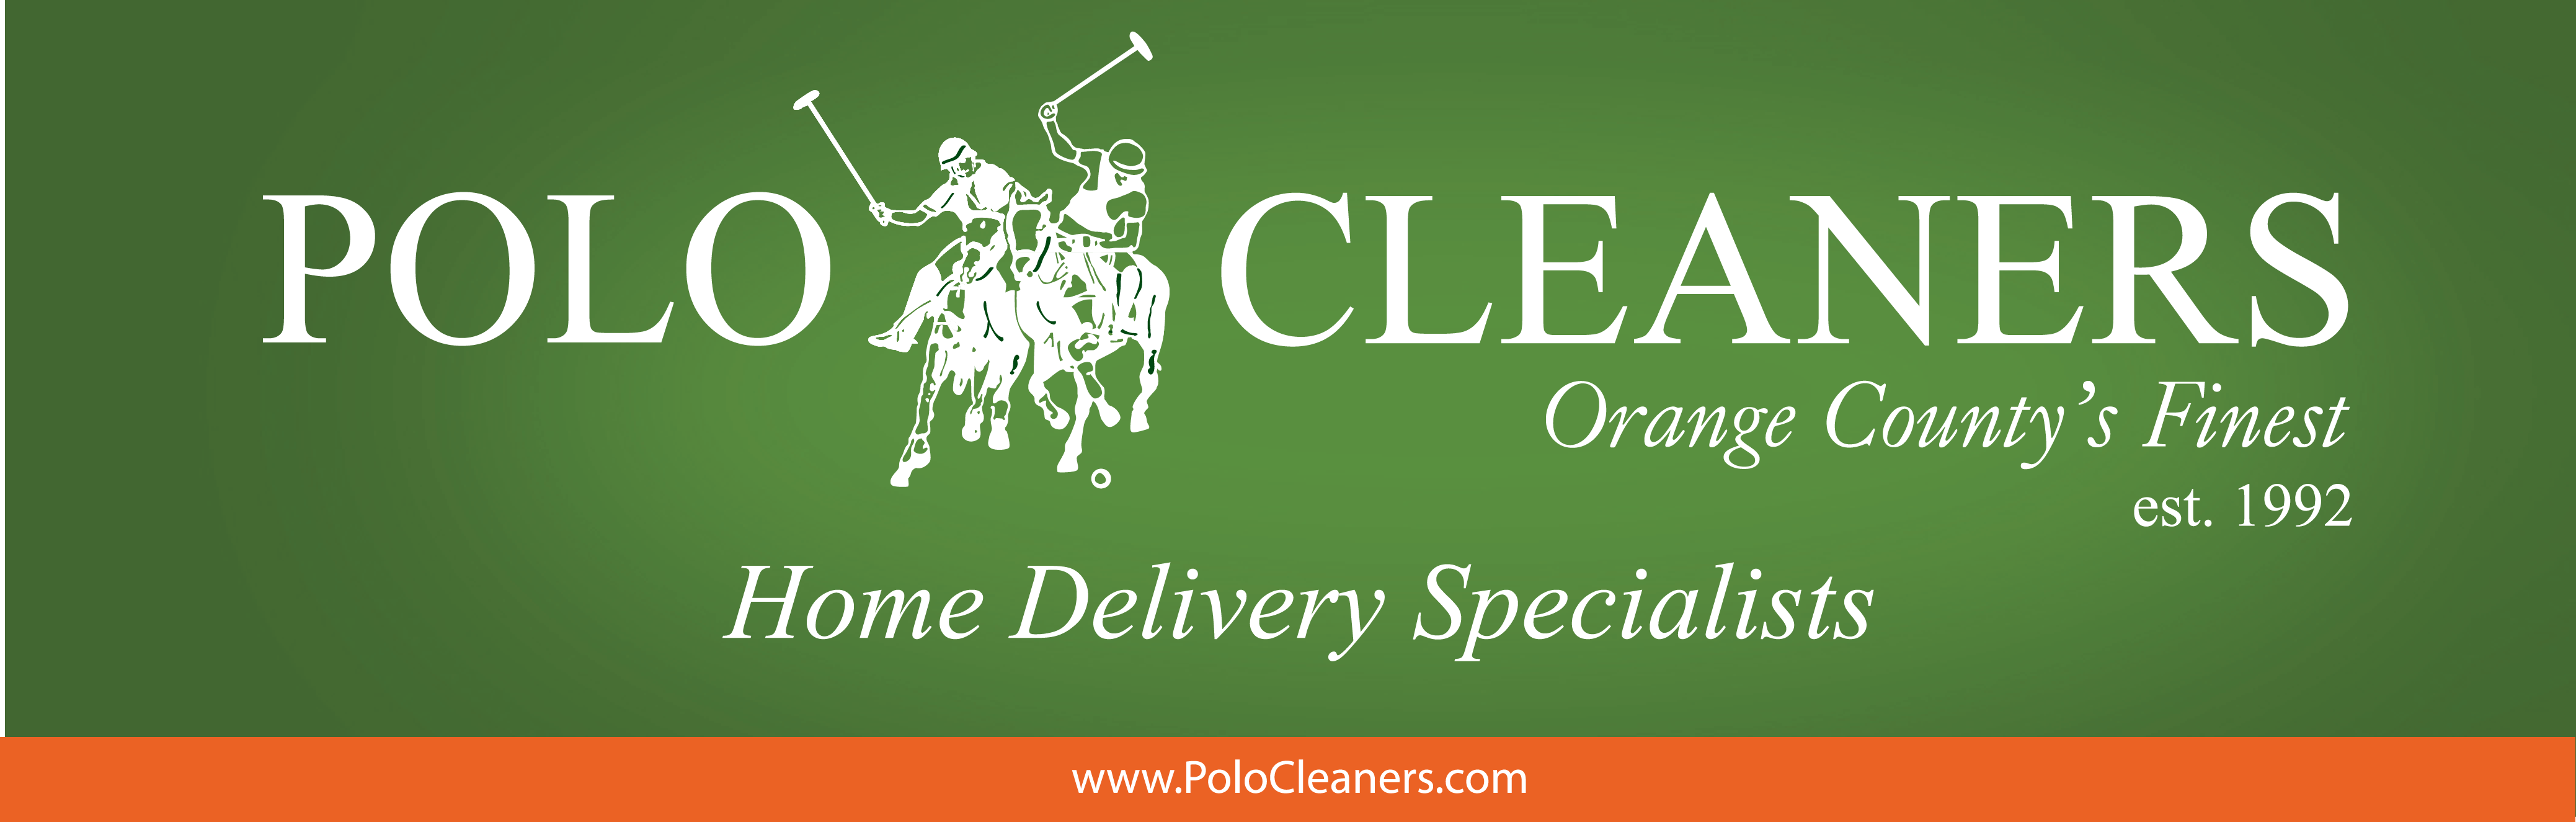 Polo Cleaners | Dry Cleaning & Laundry in 31105 Rancho Viejo Rd - San Juan Capistrano CA - Reviews - Photos - Phone Number